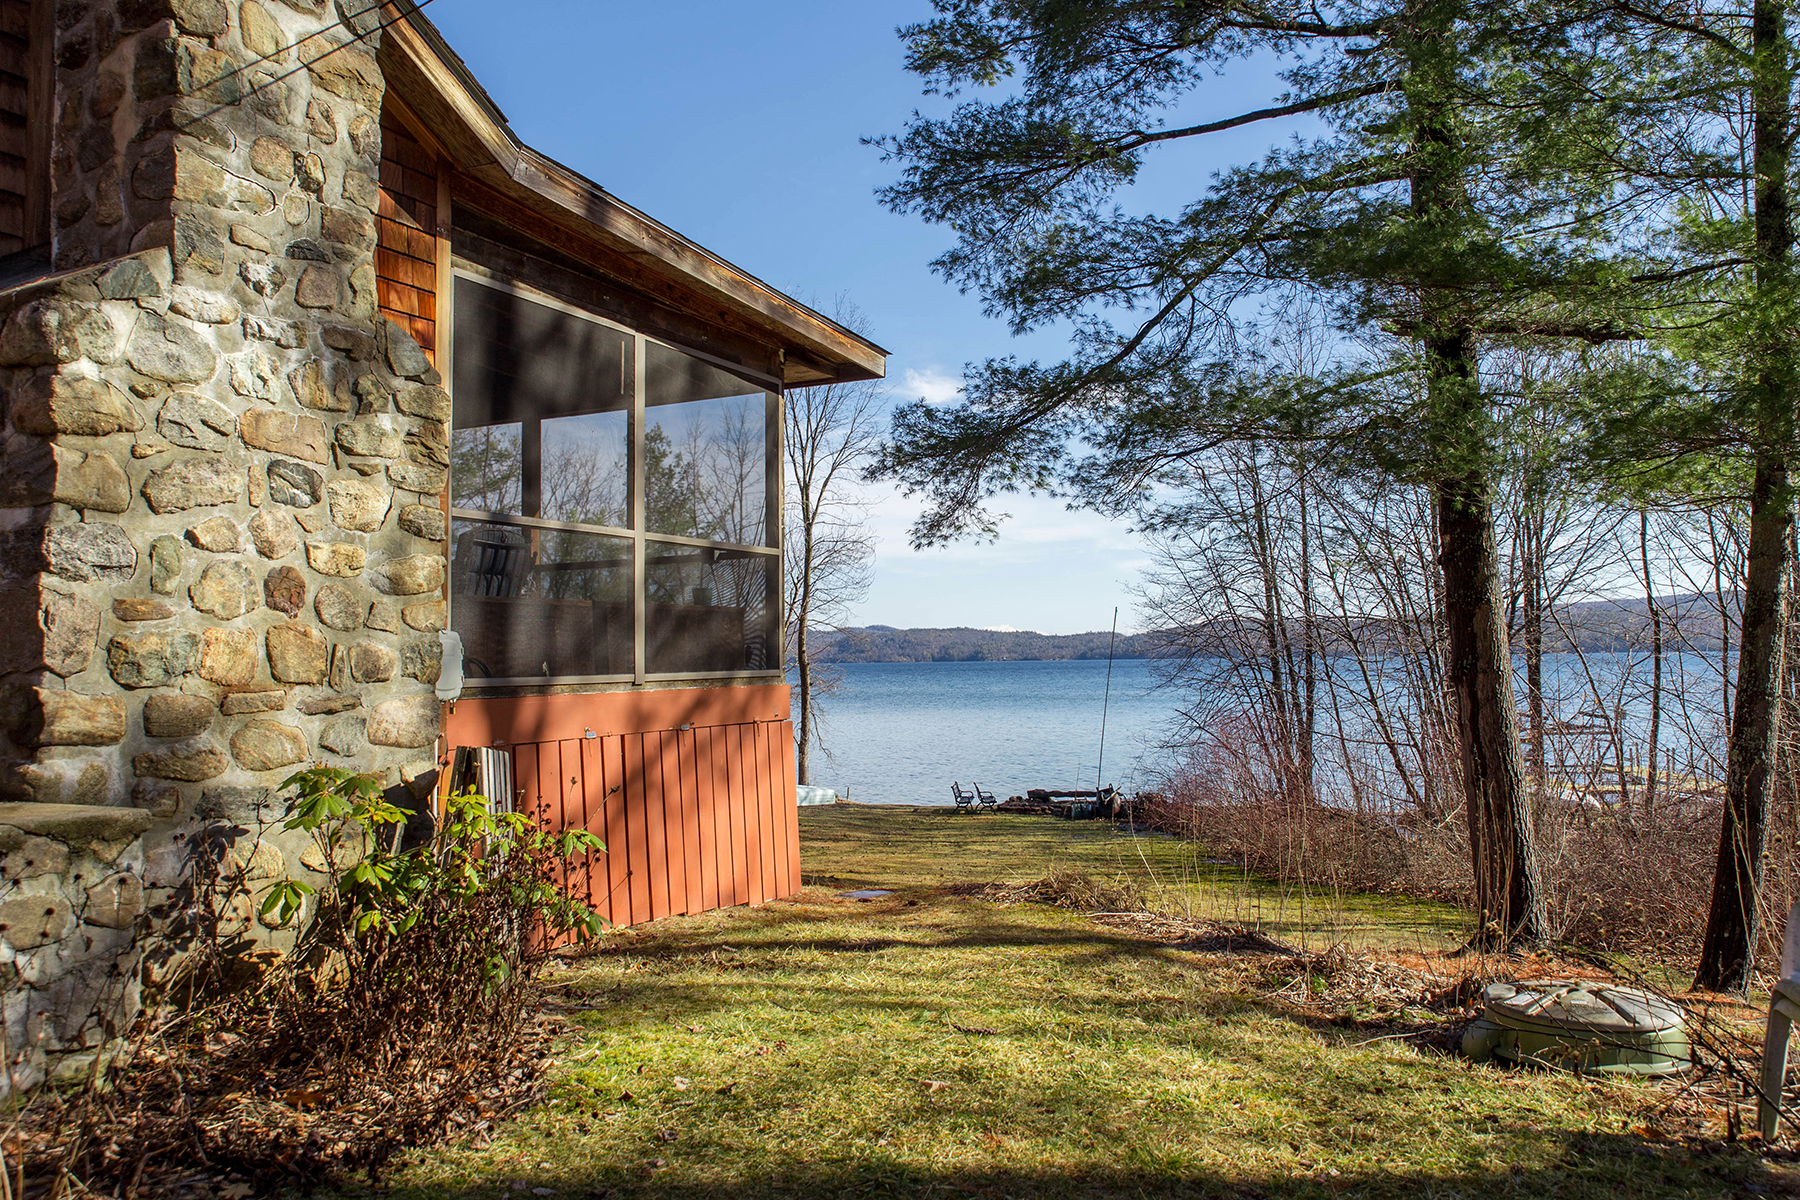 Additional photo for property listing at Adirondack Cottage on Serene Shores of Lake George 19  Pine Cove Rd Hague, New York 12836 United States